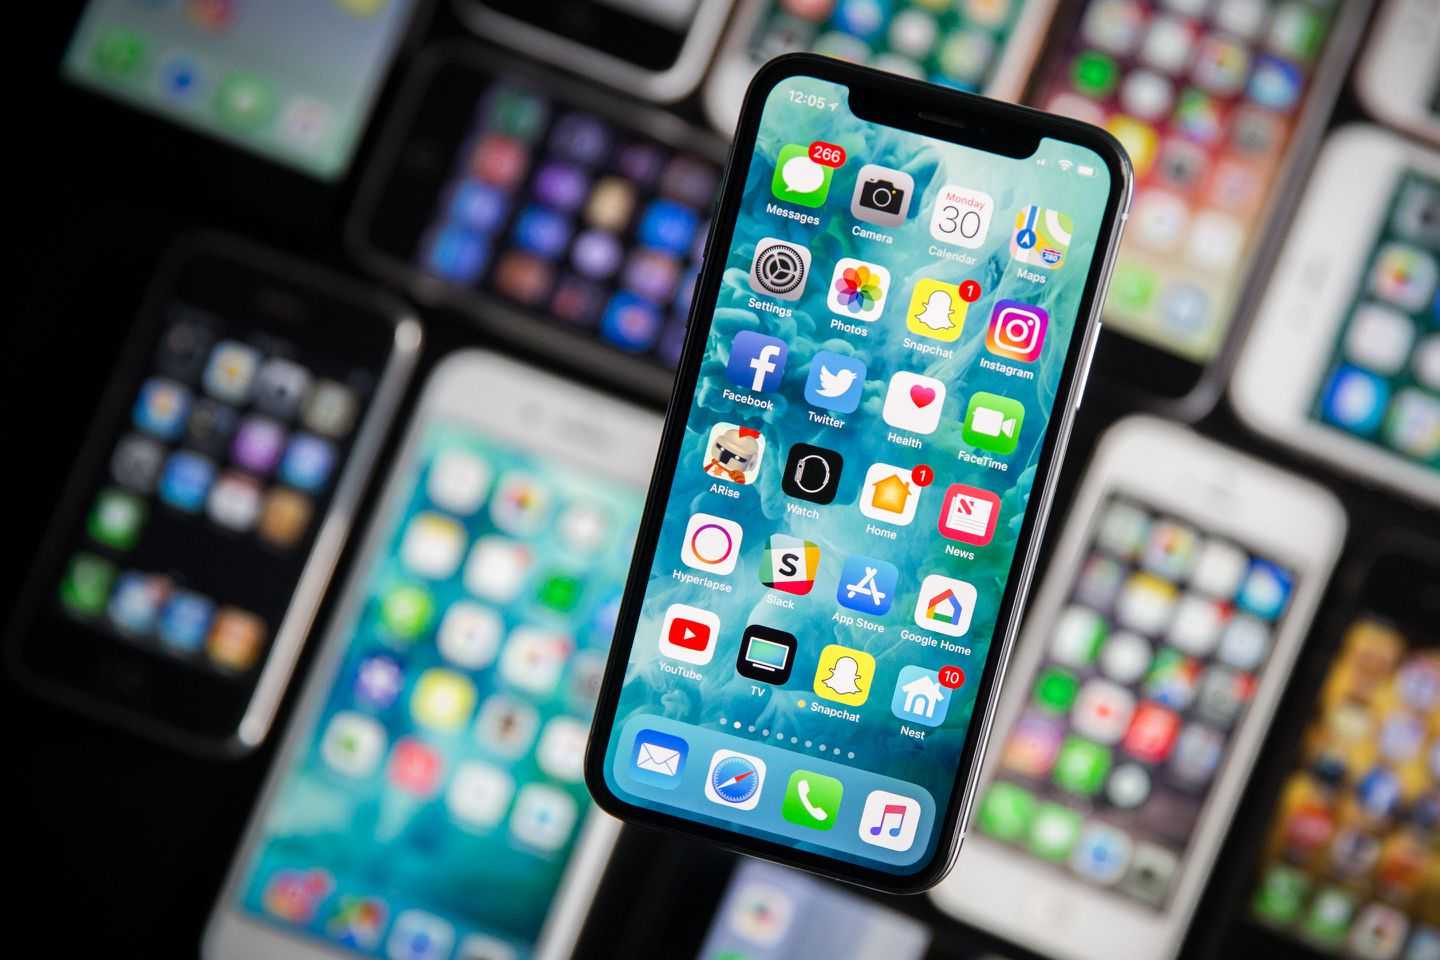 128 Million IPhones were infected with malware